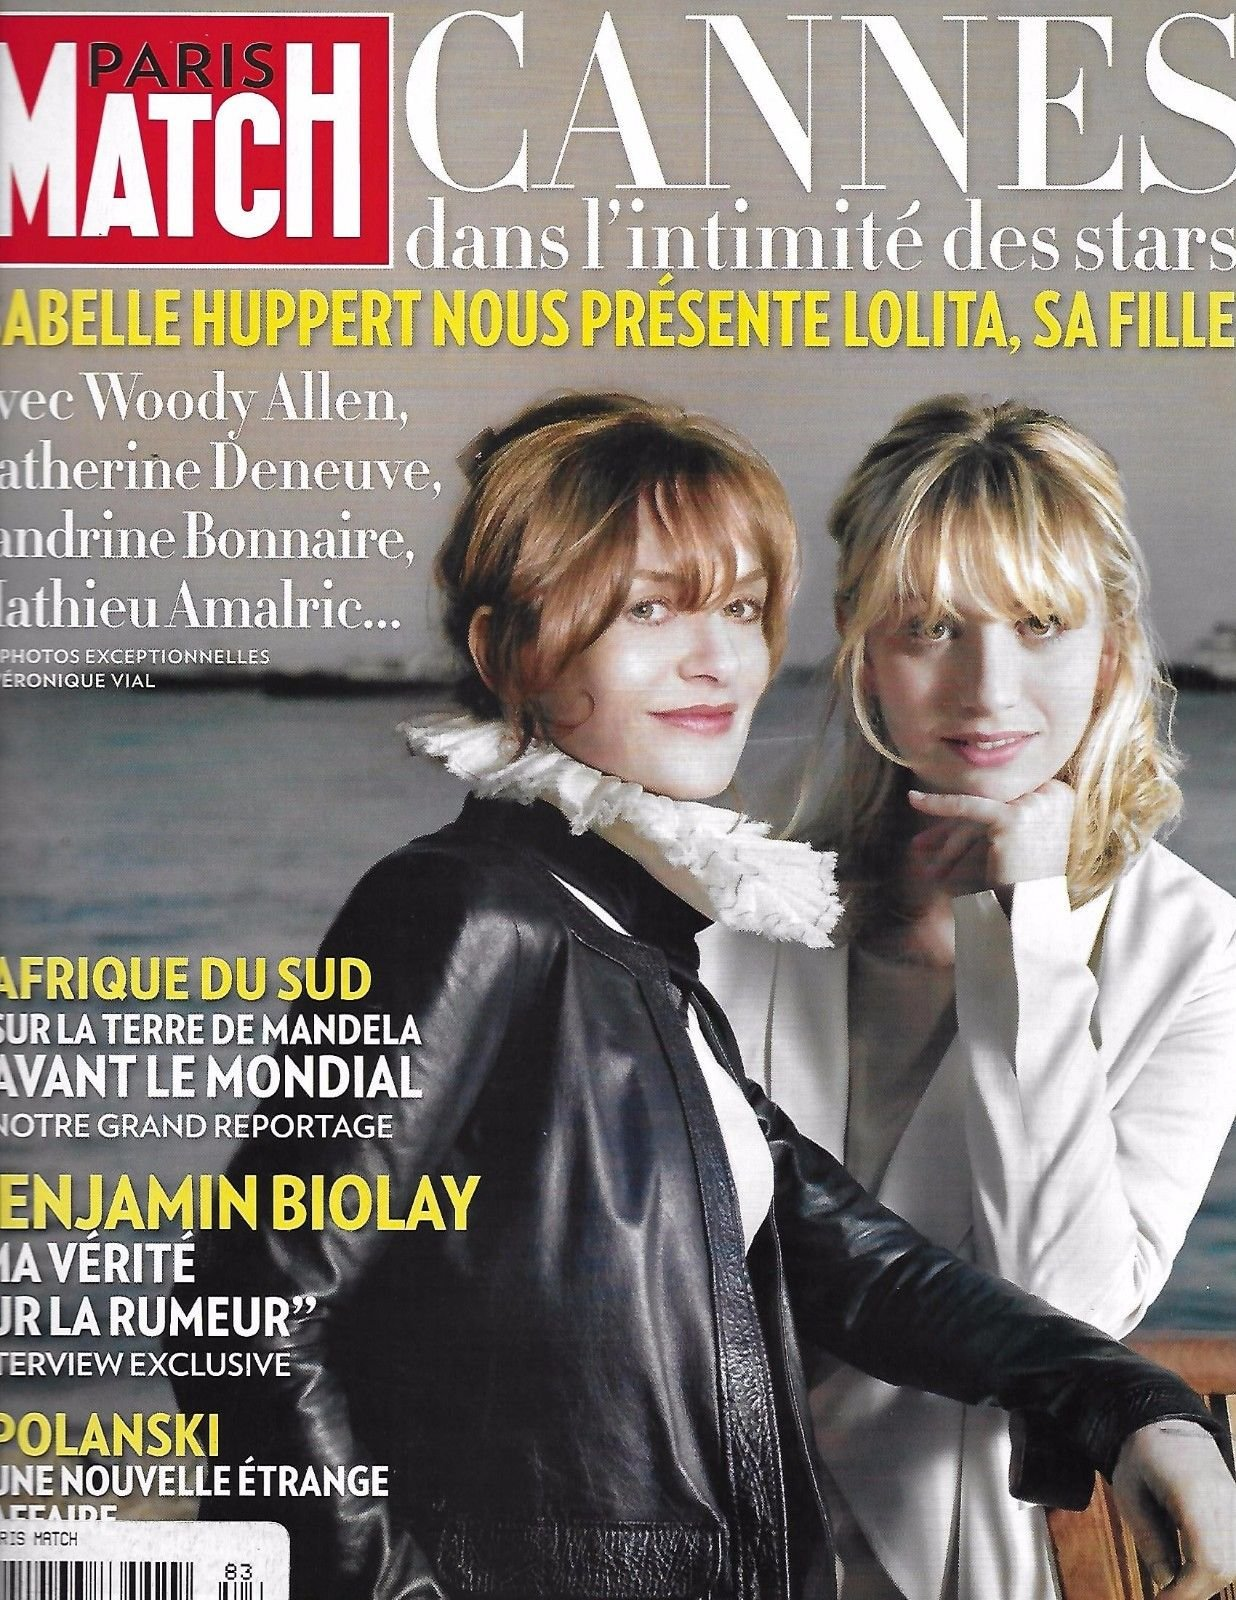 Read Online Paris Match French magazine May 20 2011 Cannes ebook